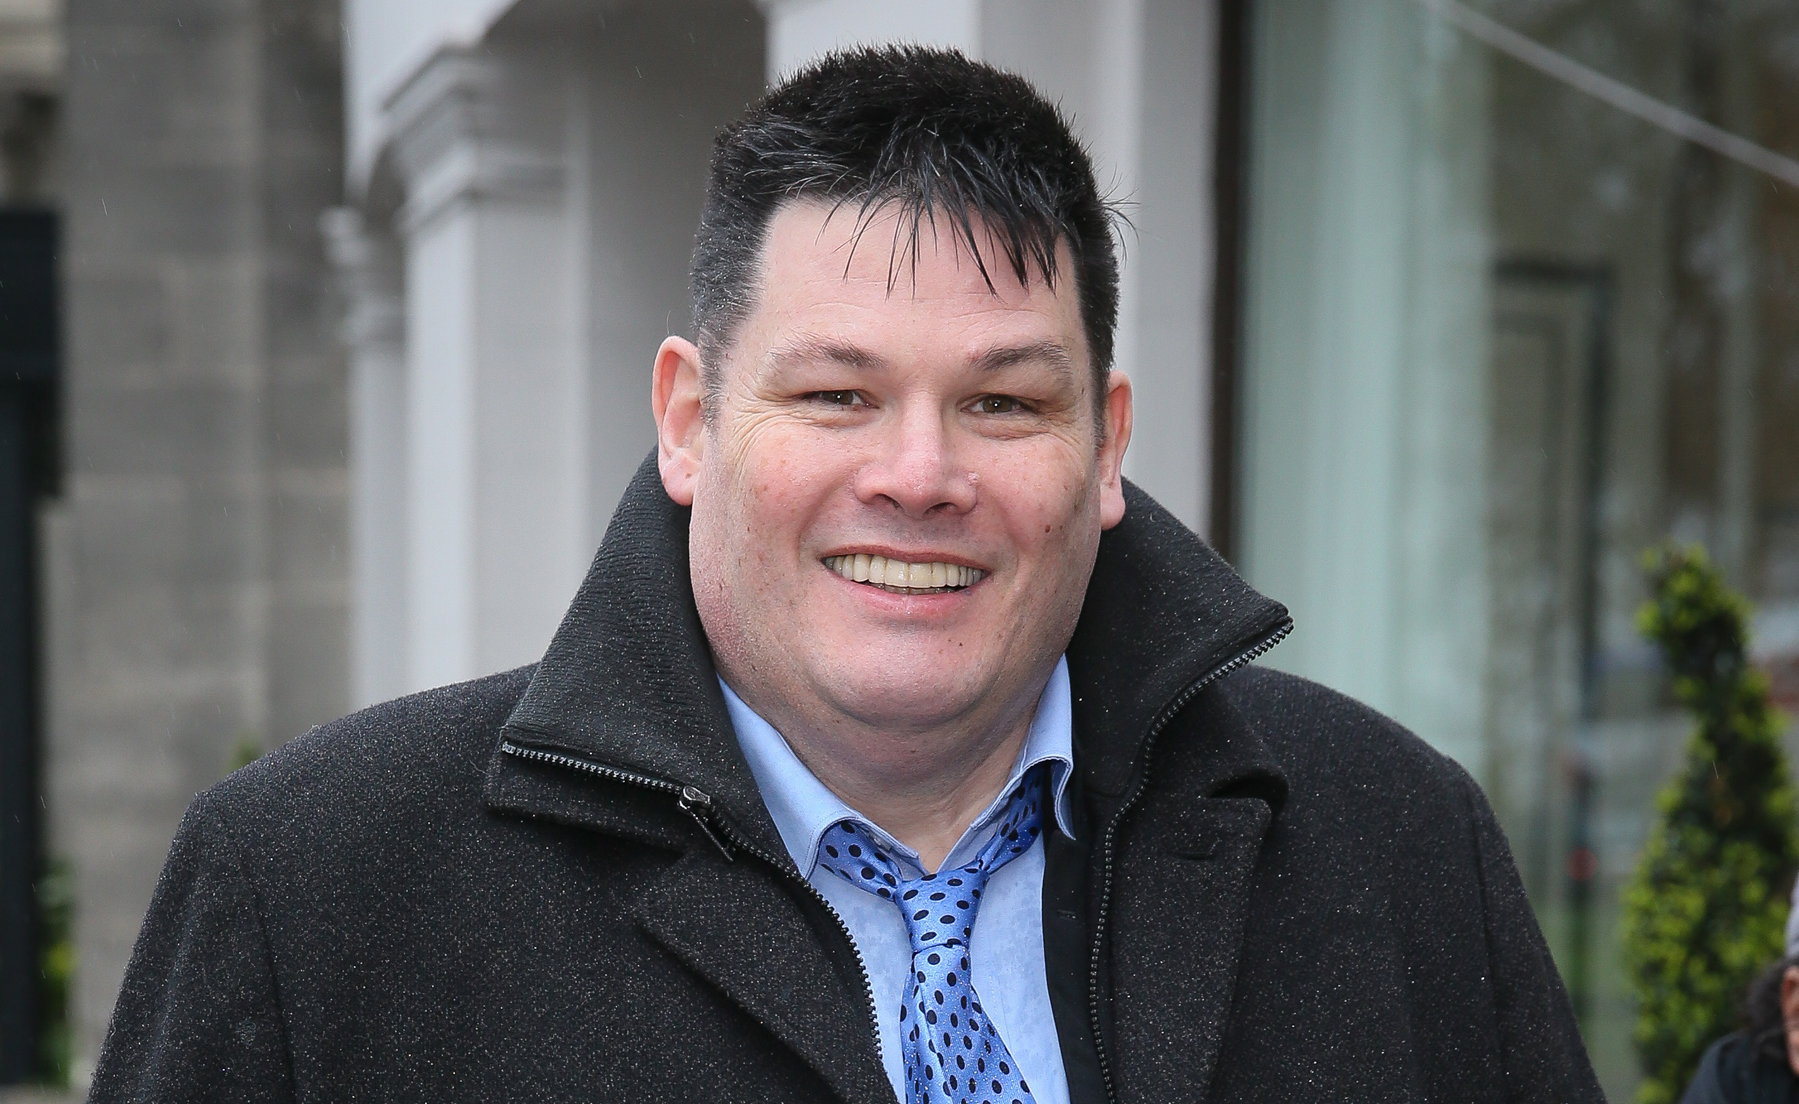 The Chase star Mark Labbett 'ends marriage after wife's affair'